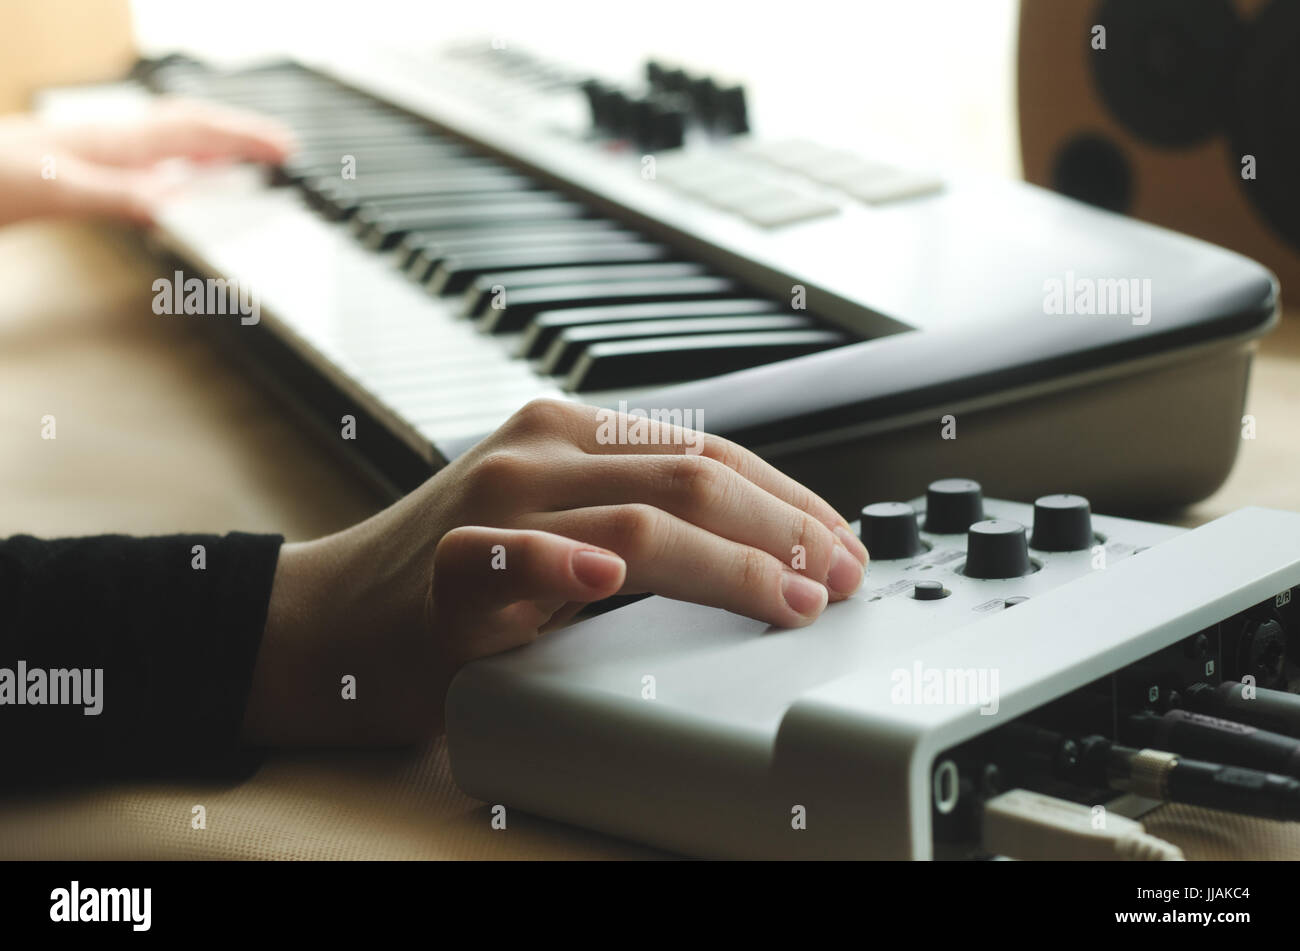 A woman in a black jacket adjusts the synthesizer on the music console, while the other hand plays the synthesizer - Stock Image